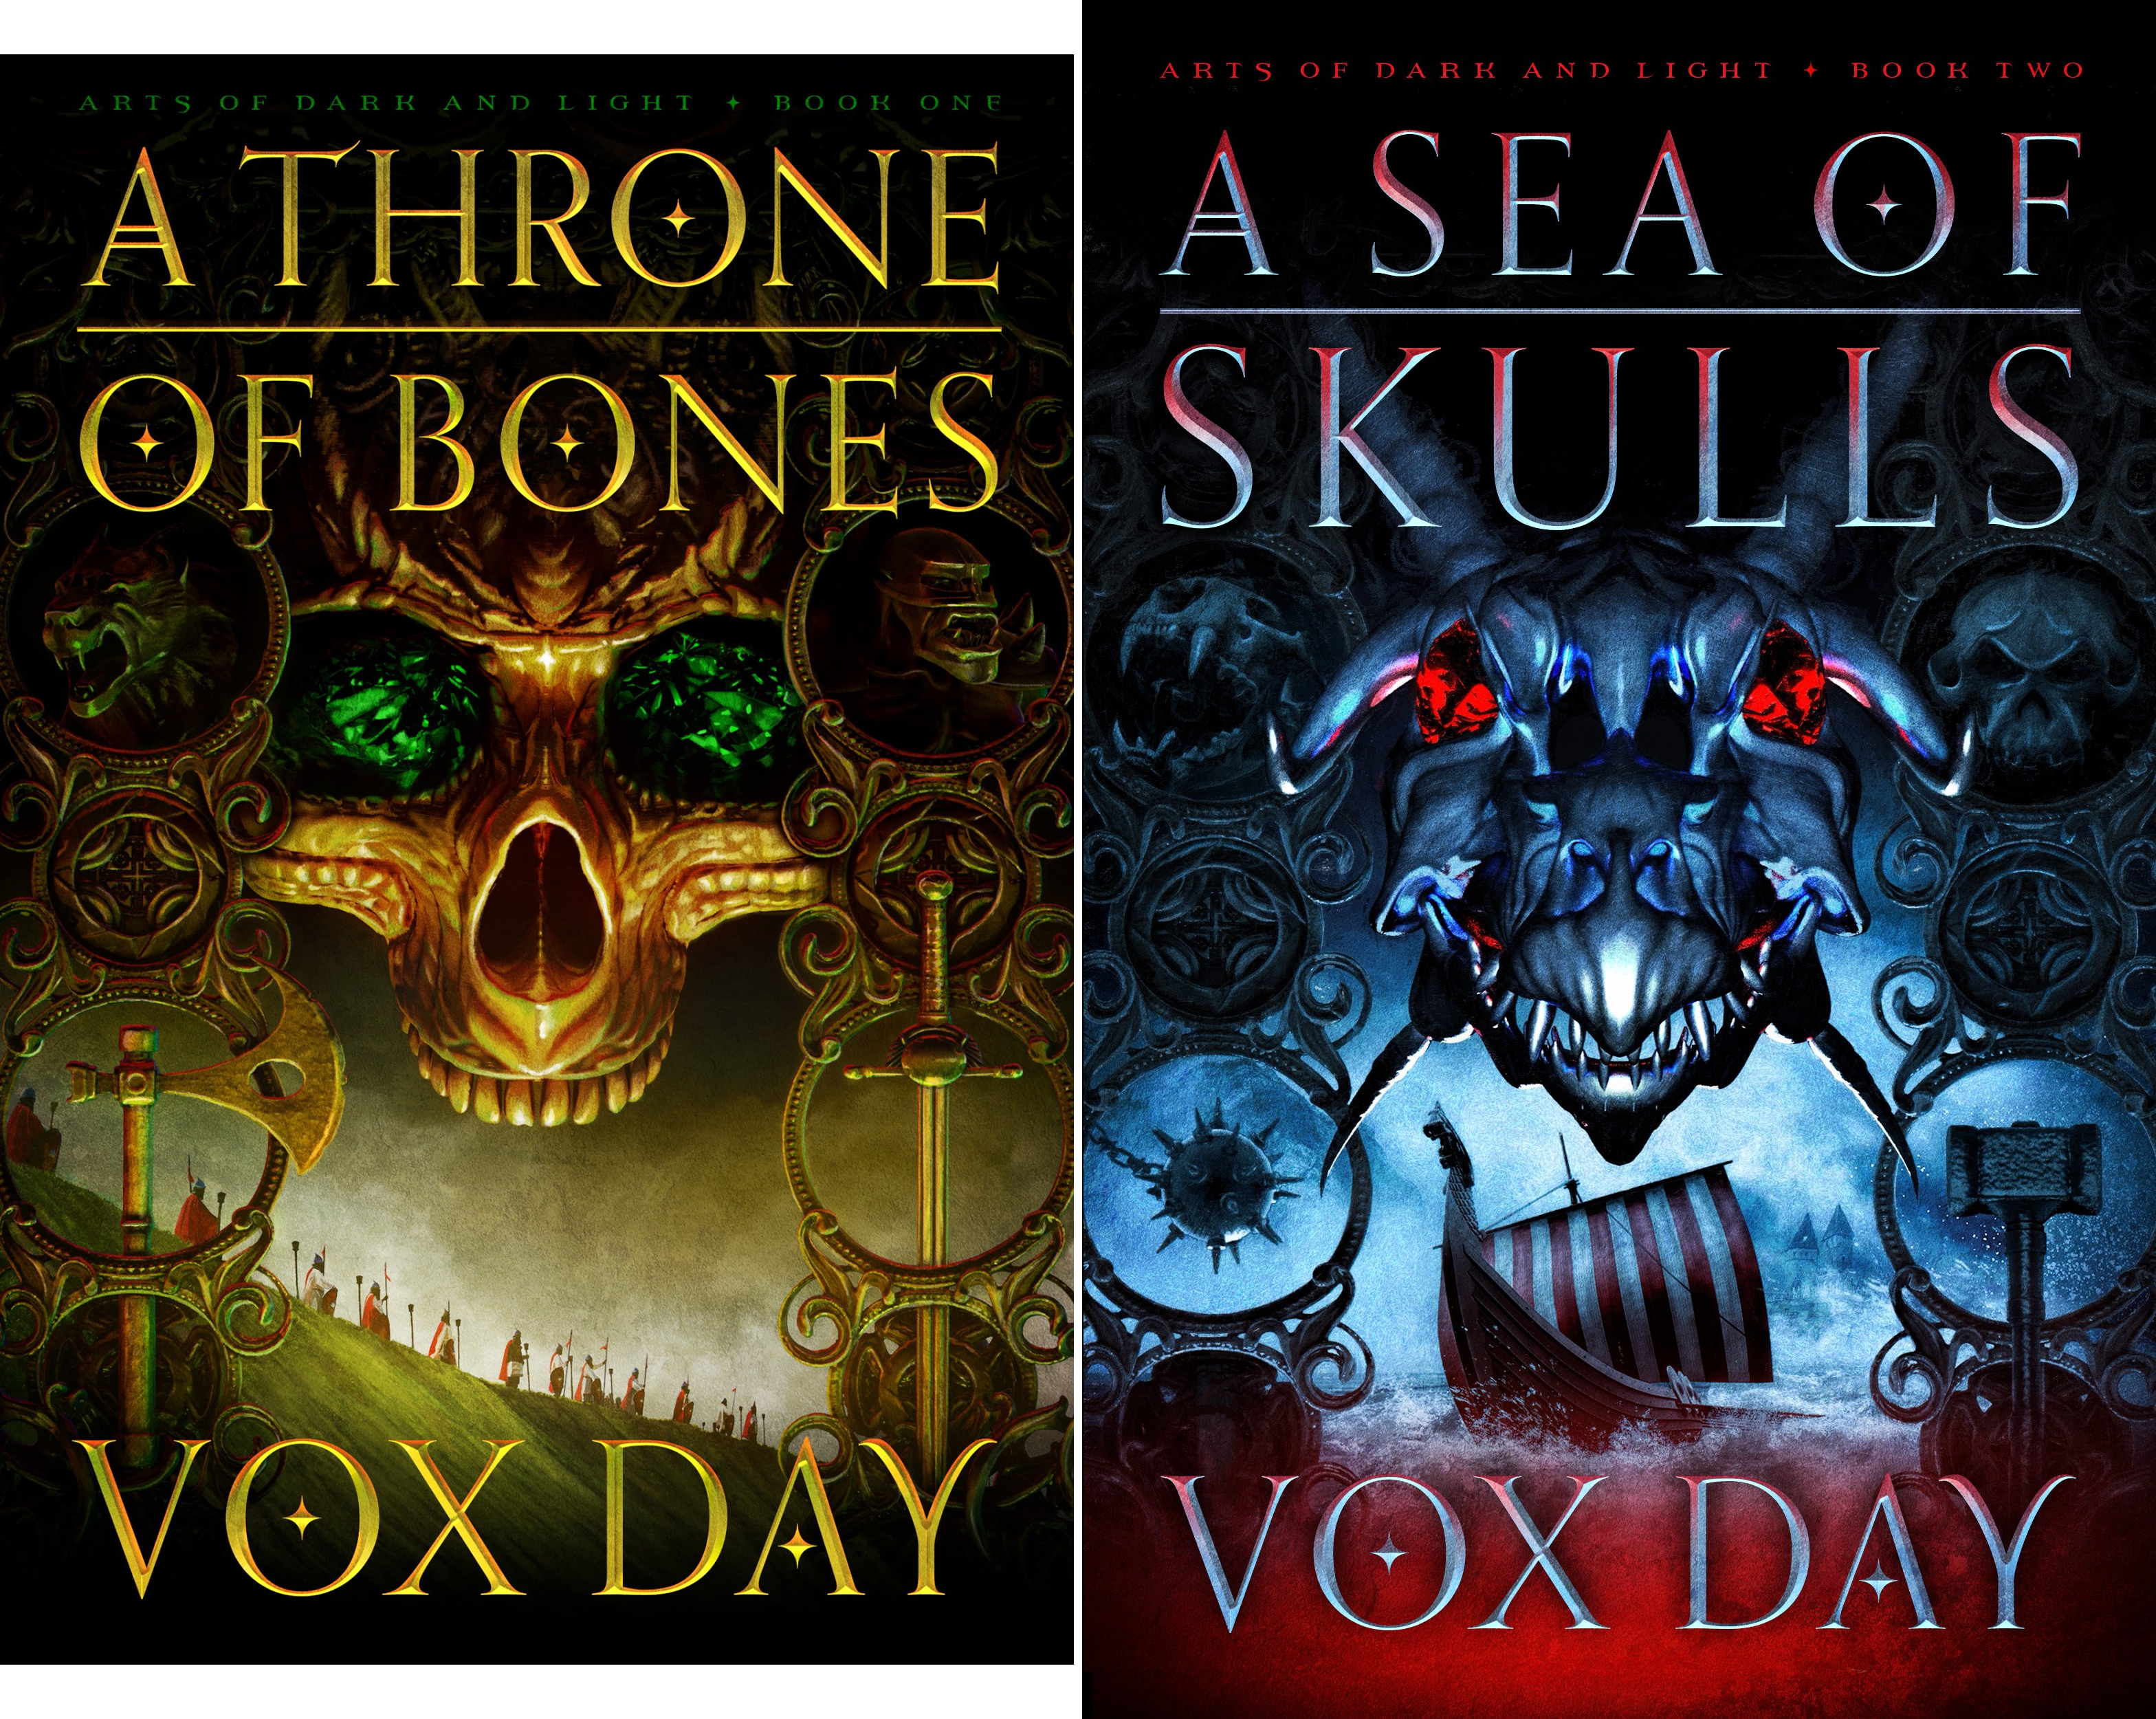 Book cover from Arts of Dark and Light (2 Book Series) by Vox Day